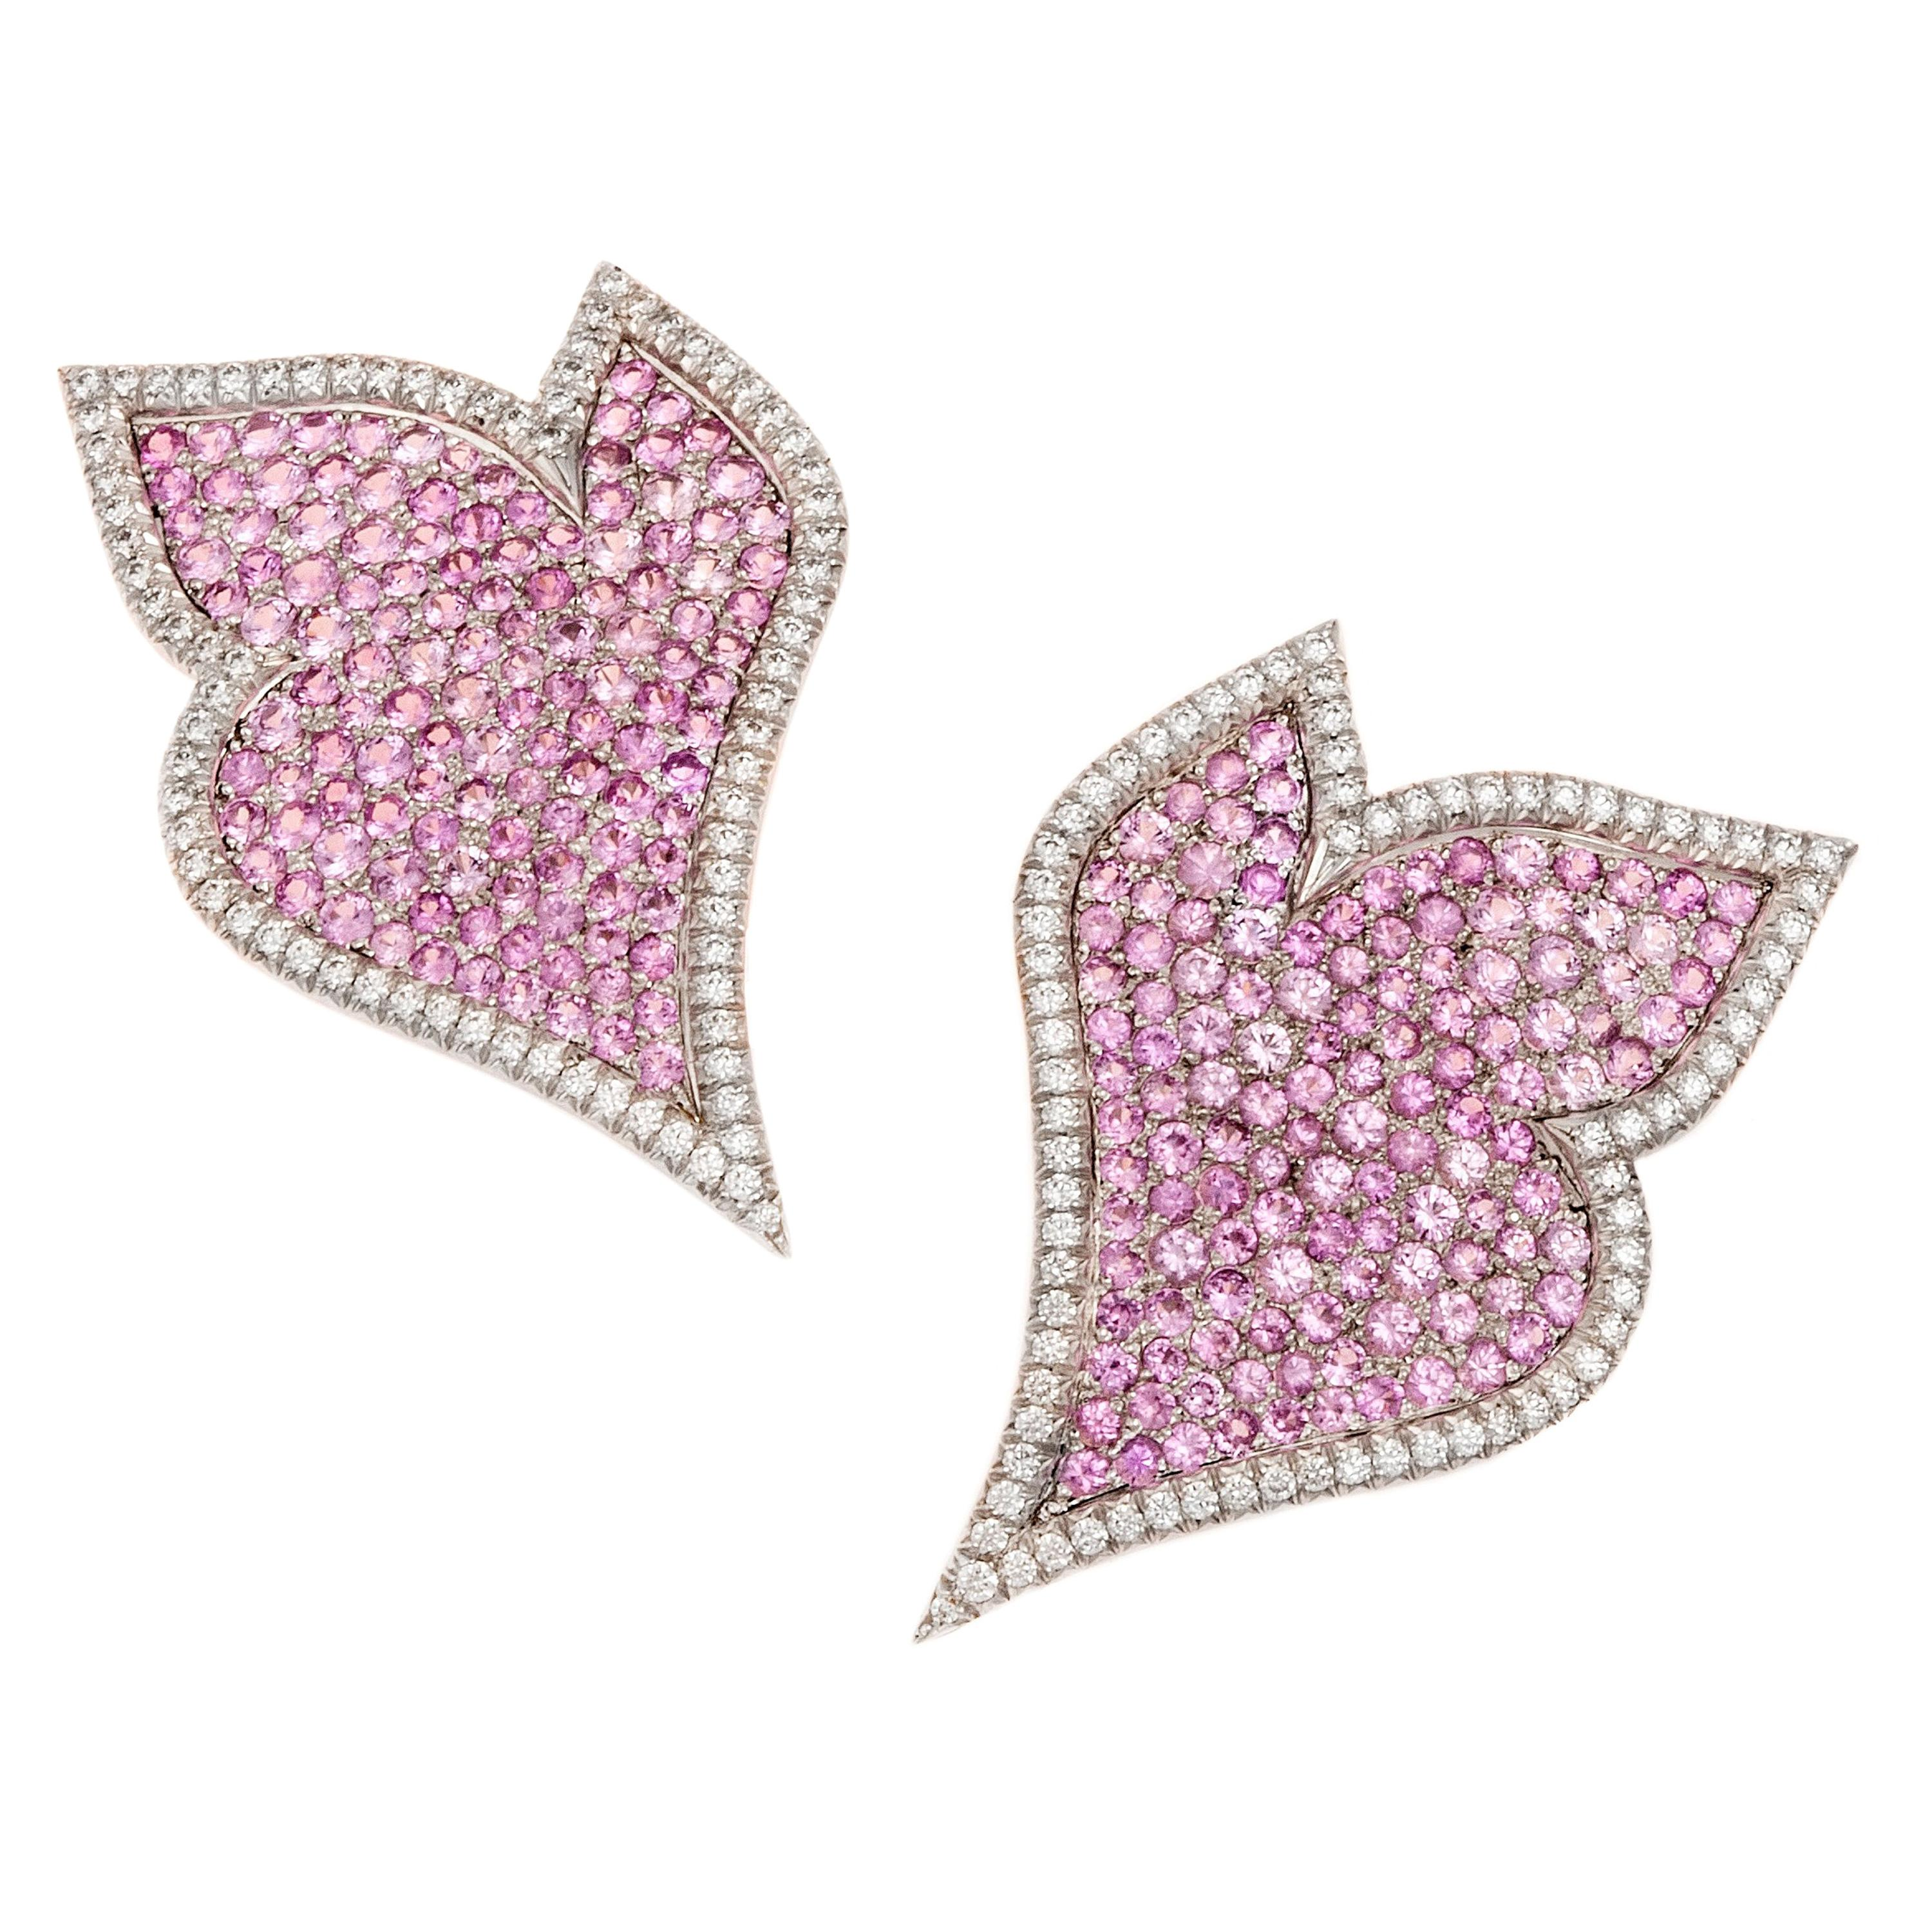 8 Carat Pink Sapphires and 1.31 Carat Diamonds 18 Kt White Gold Earrings